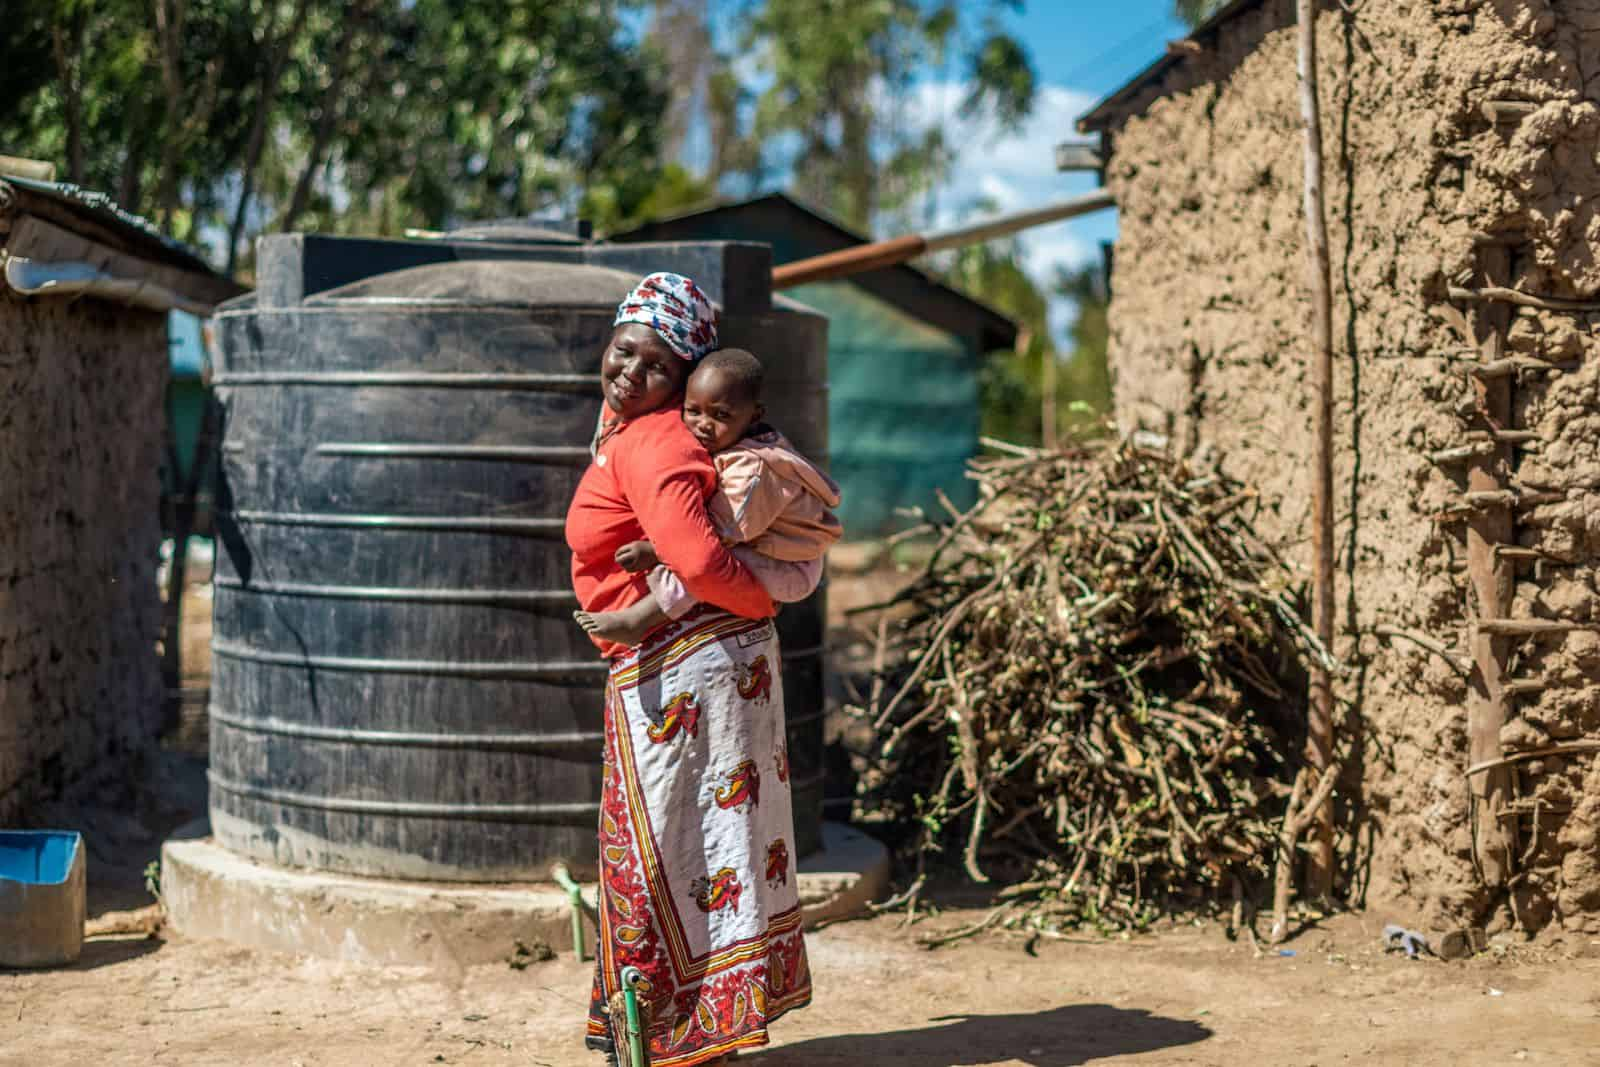 A woman with a baby on her back stands in front of a mud house with a water tank.